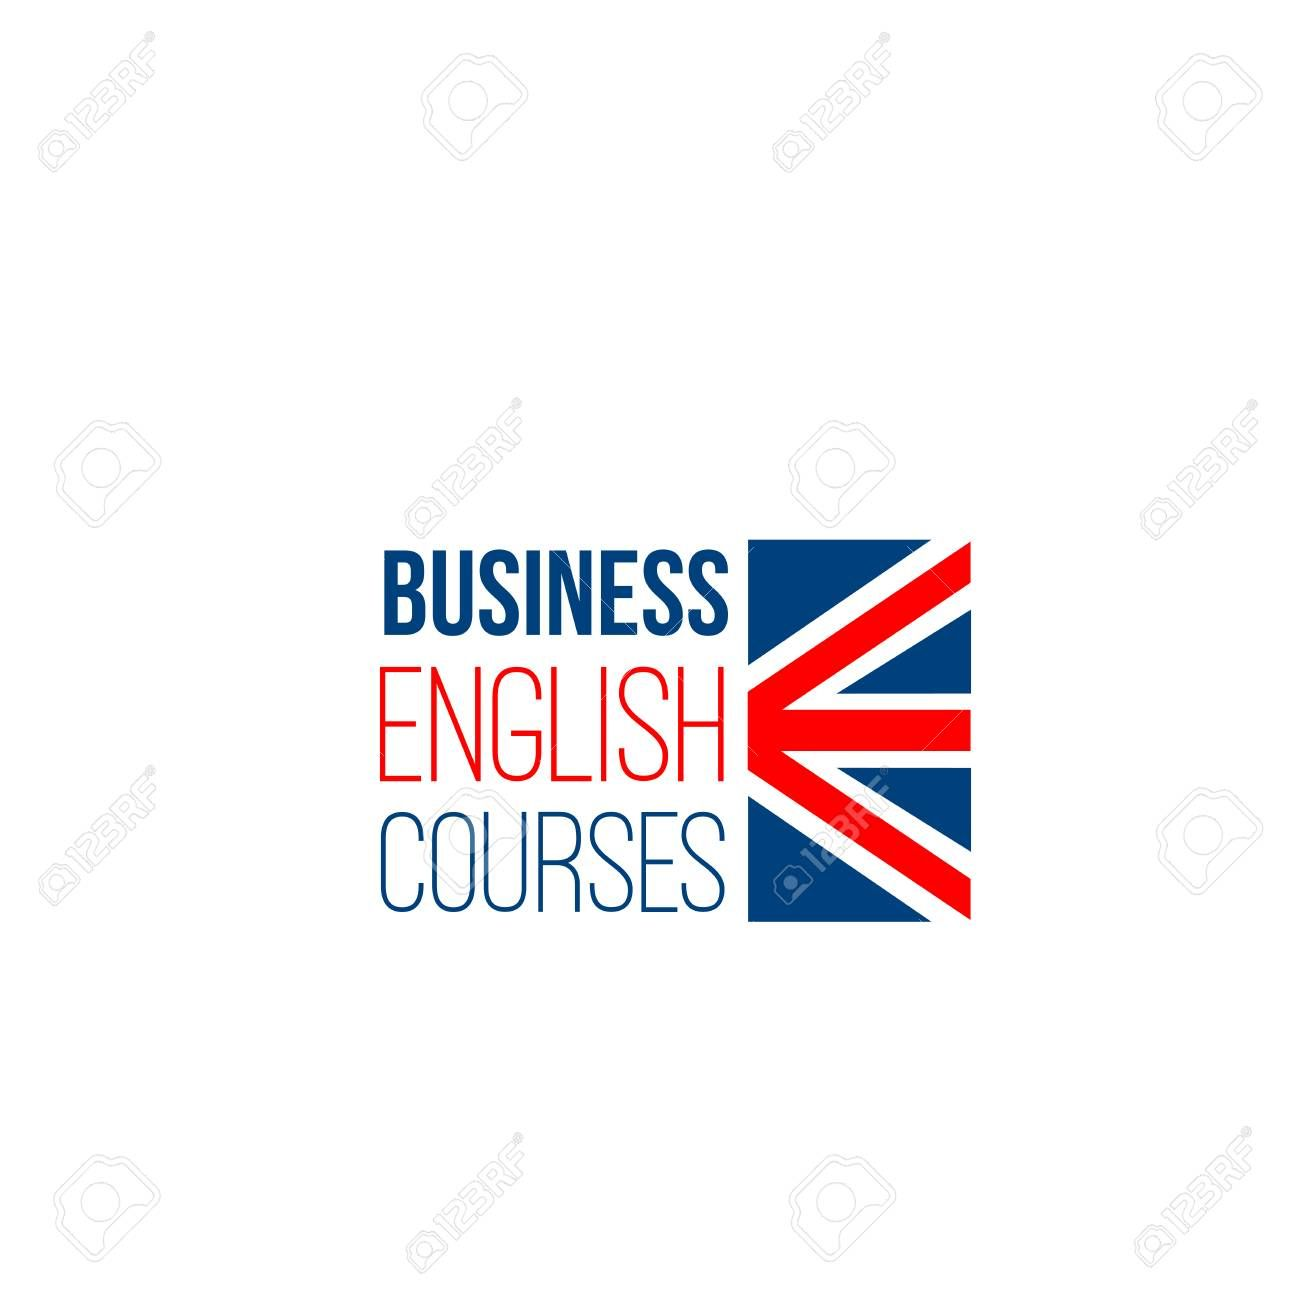 Business English Courses Vector Sign Isolated On A White Background Studying Foreign Languages Concept Creative Badge Fo English Logo Logo Design School Logo